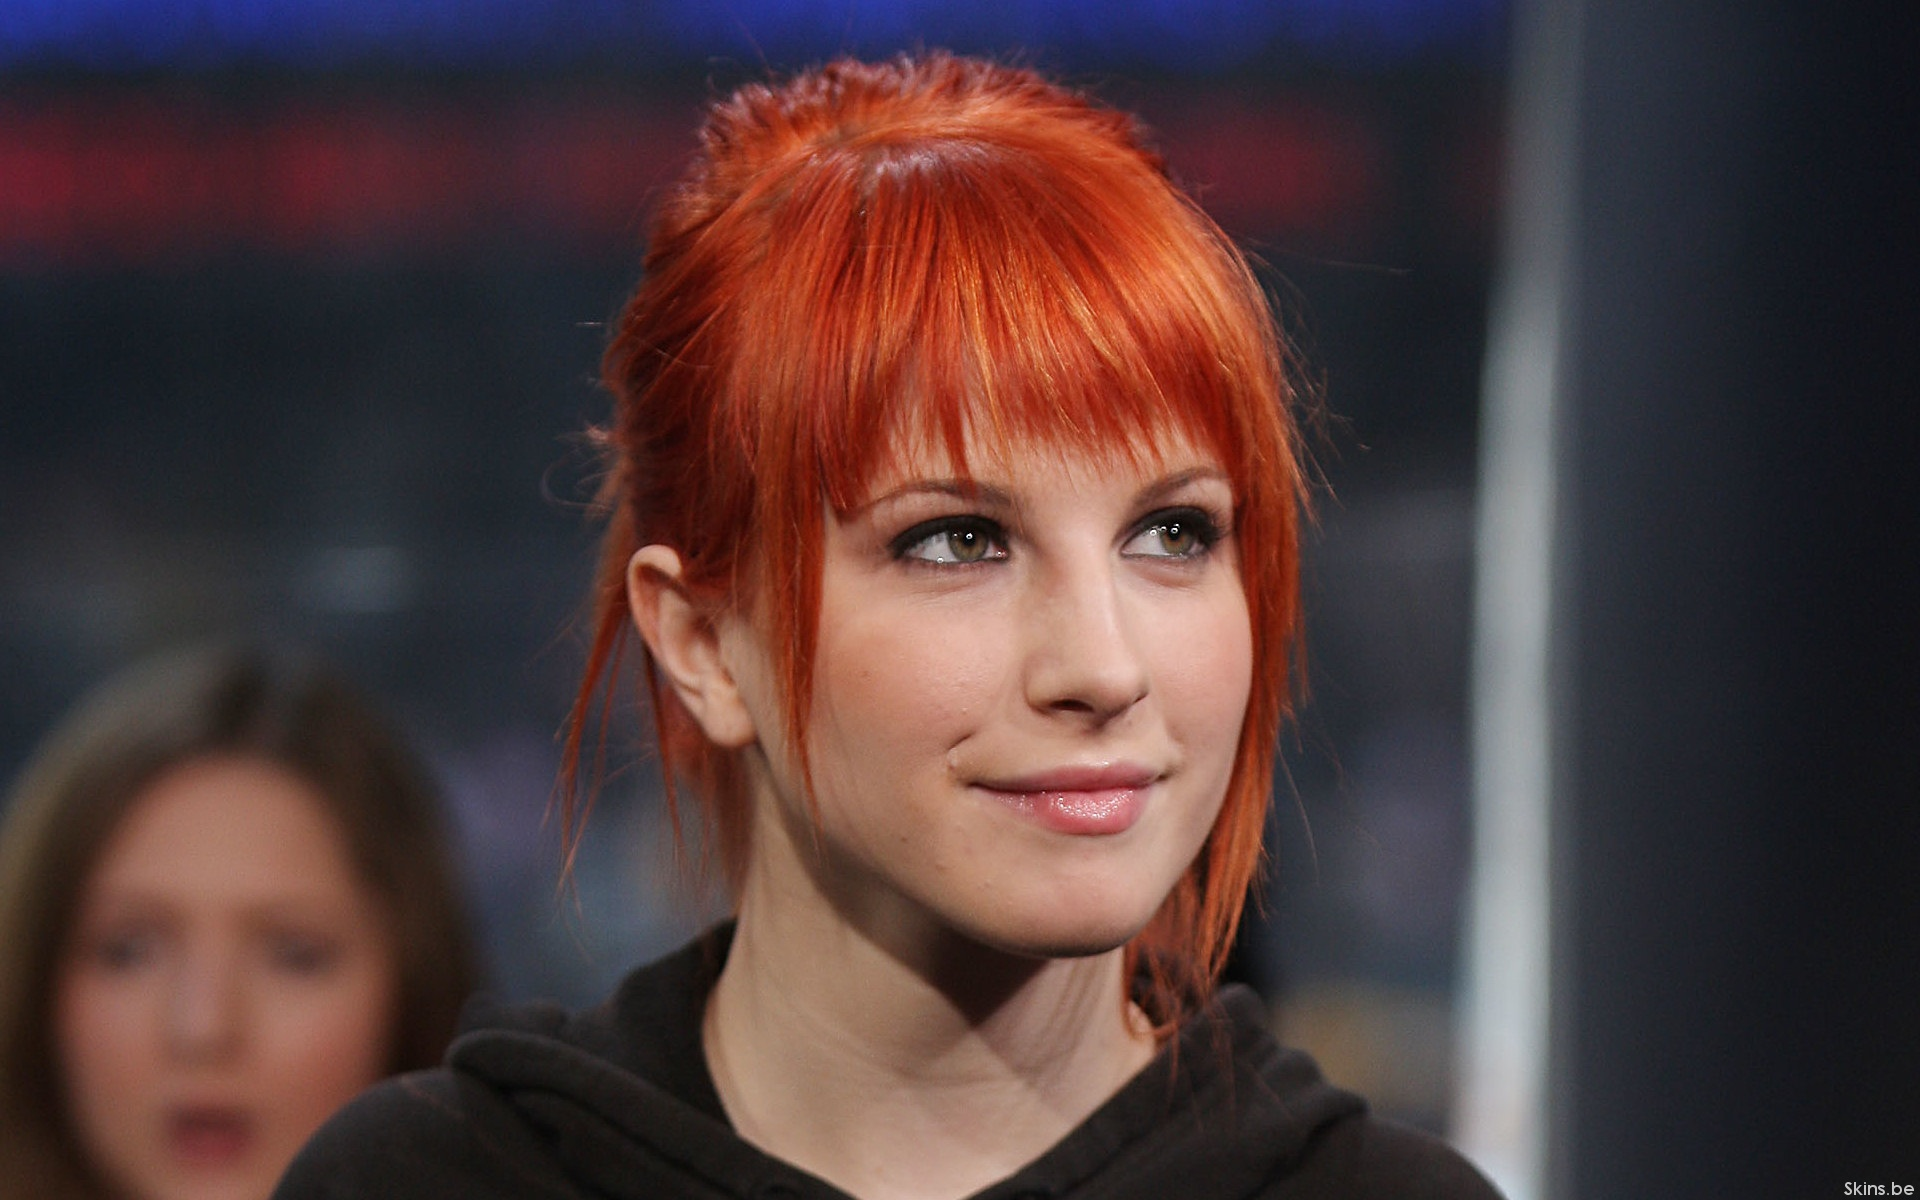 Hayley Williams pelirroja - 1920x1200